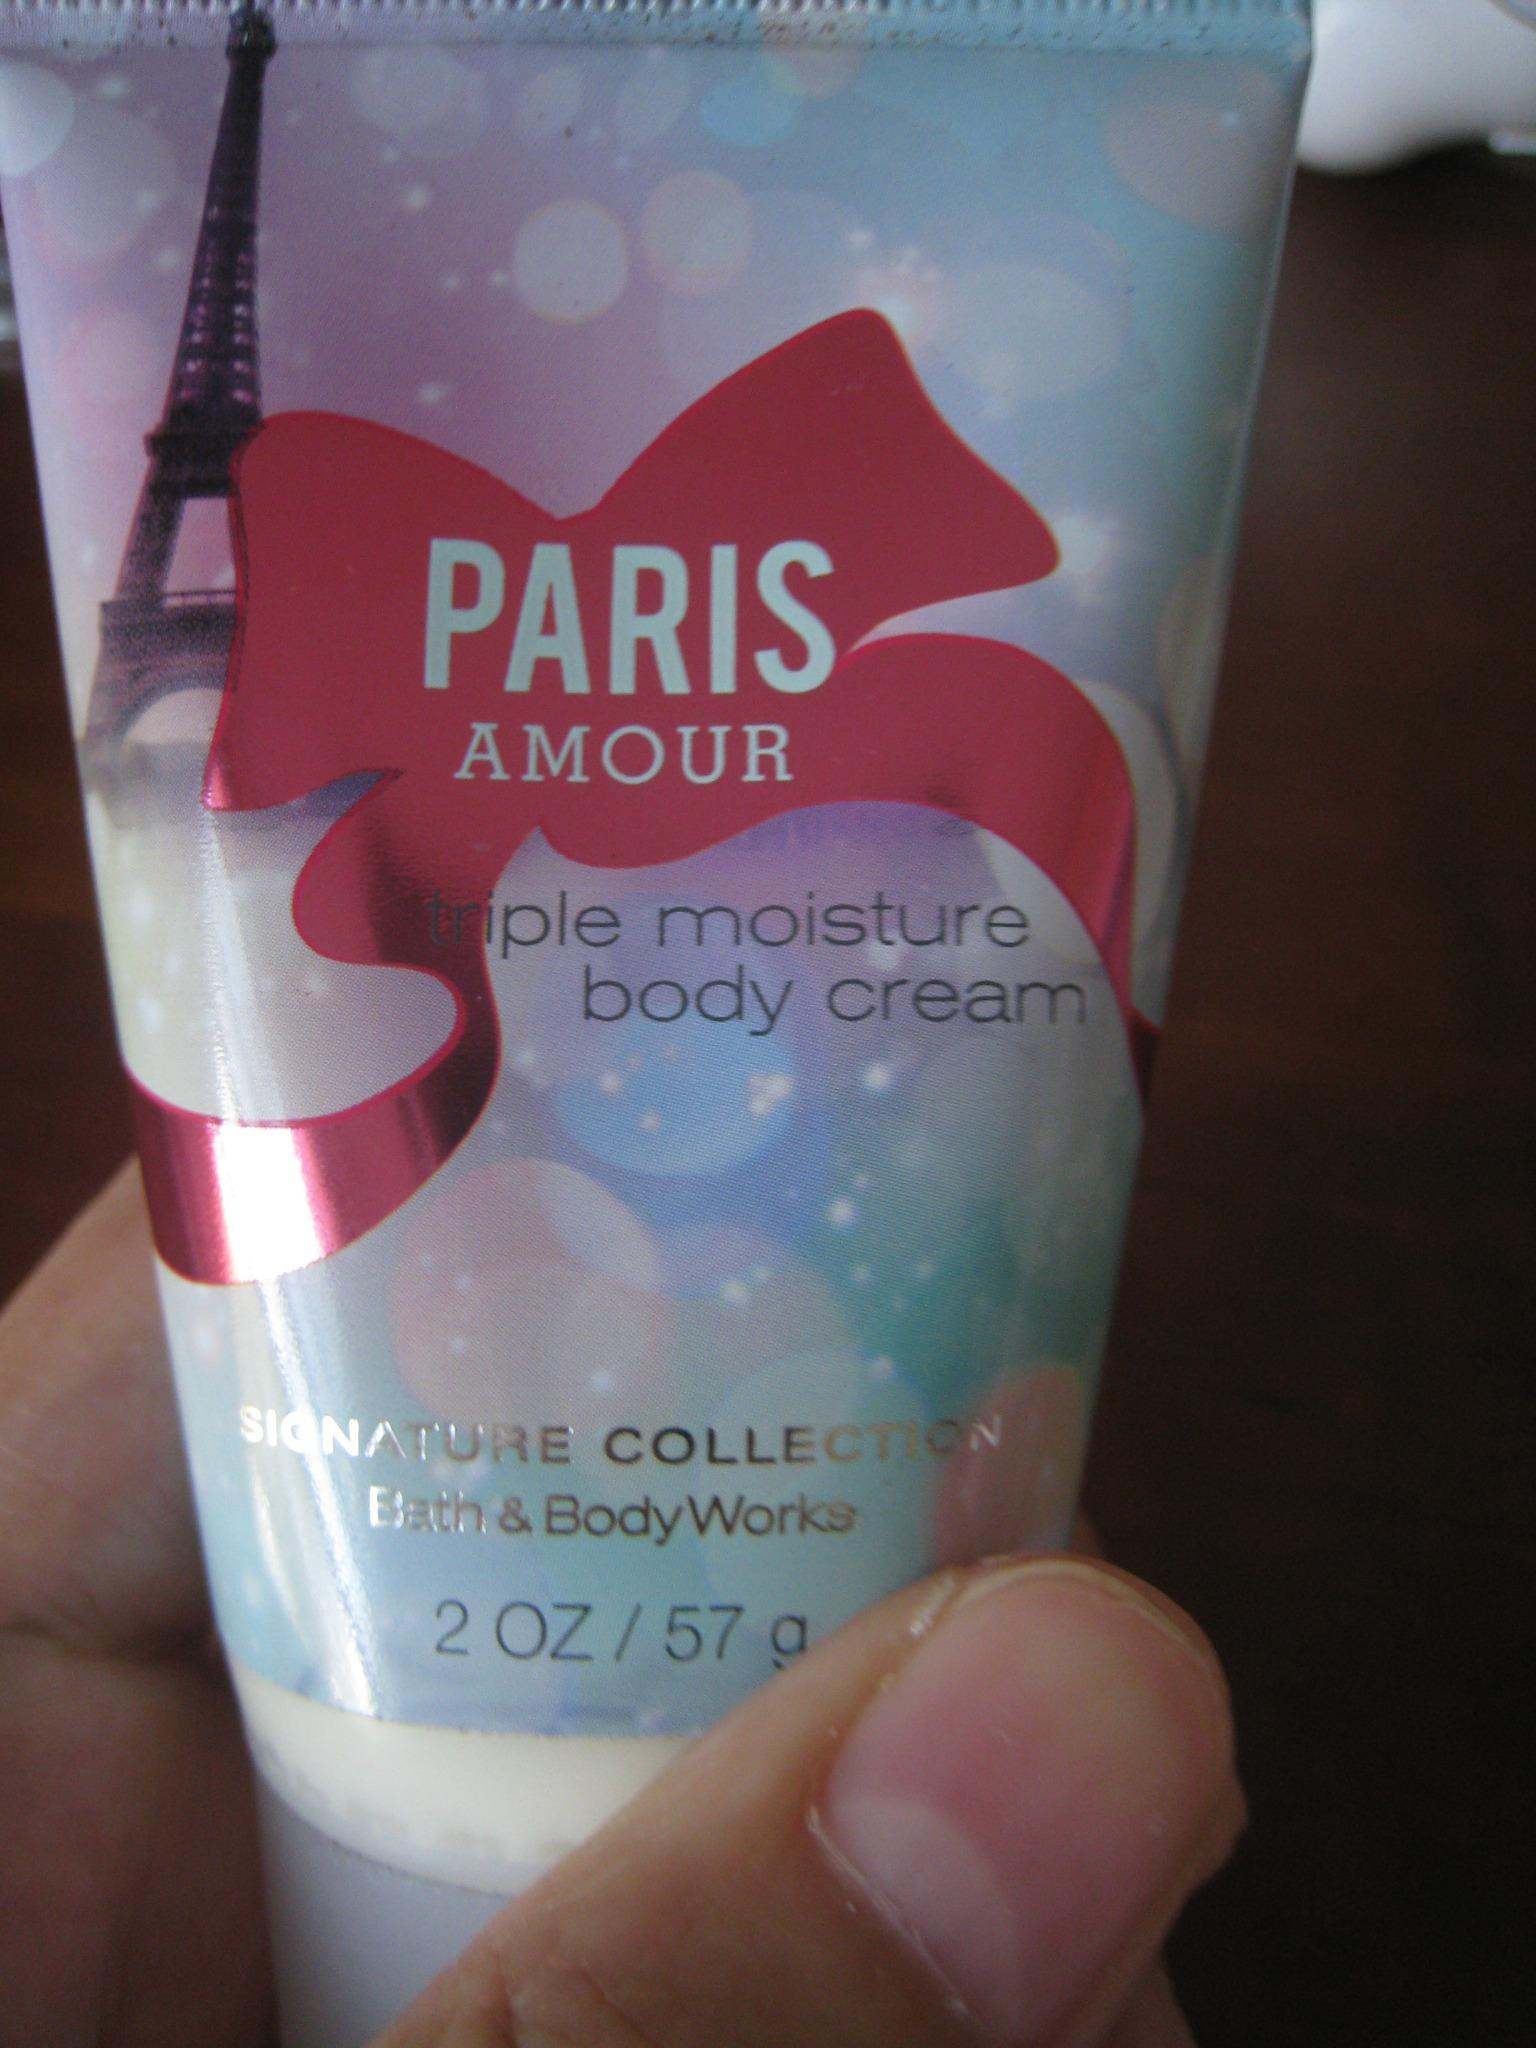 Paris Amour Bath & BodyWorks Lotion